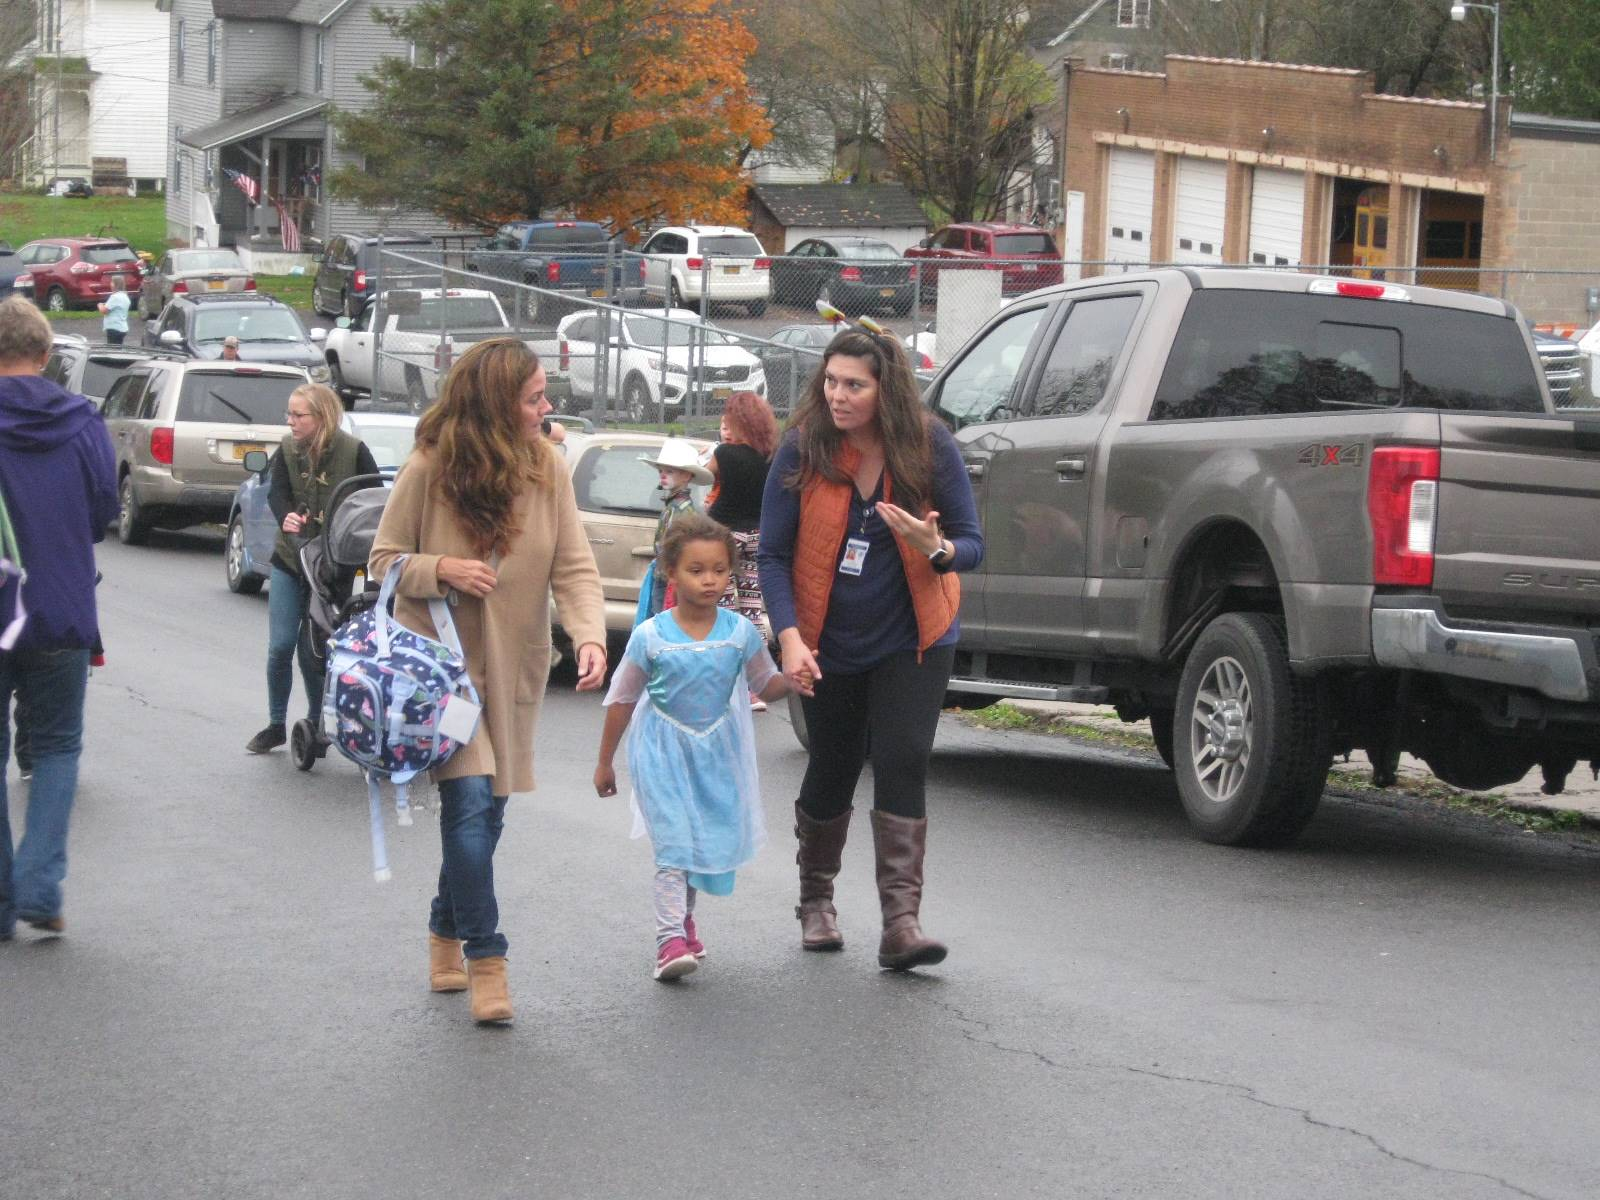 A student marches in between 2 adults in halloween parade